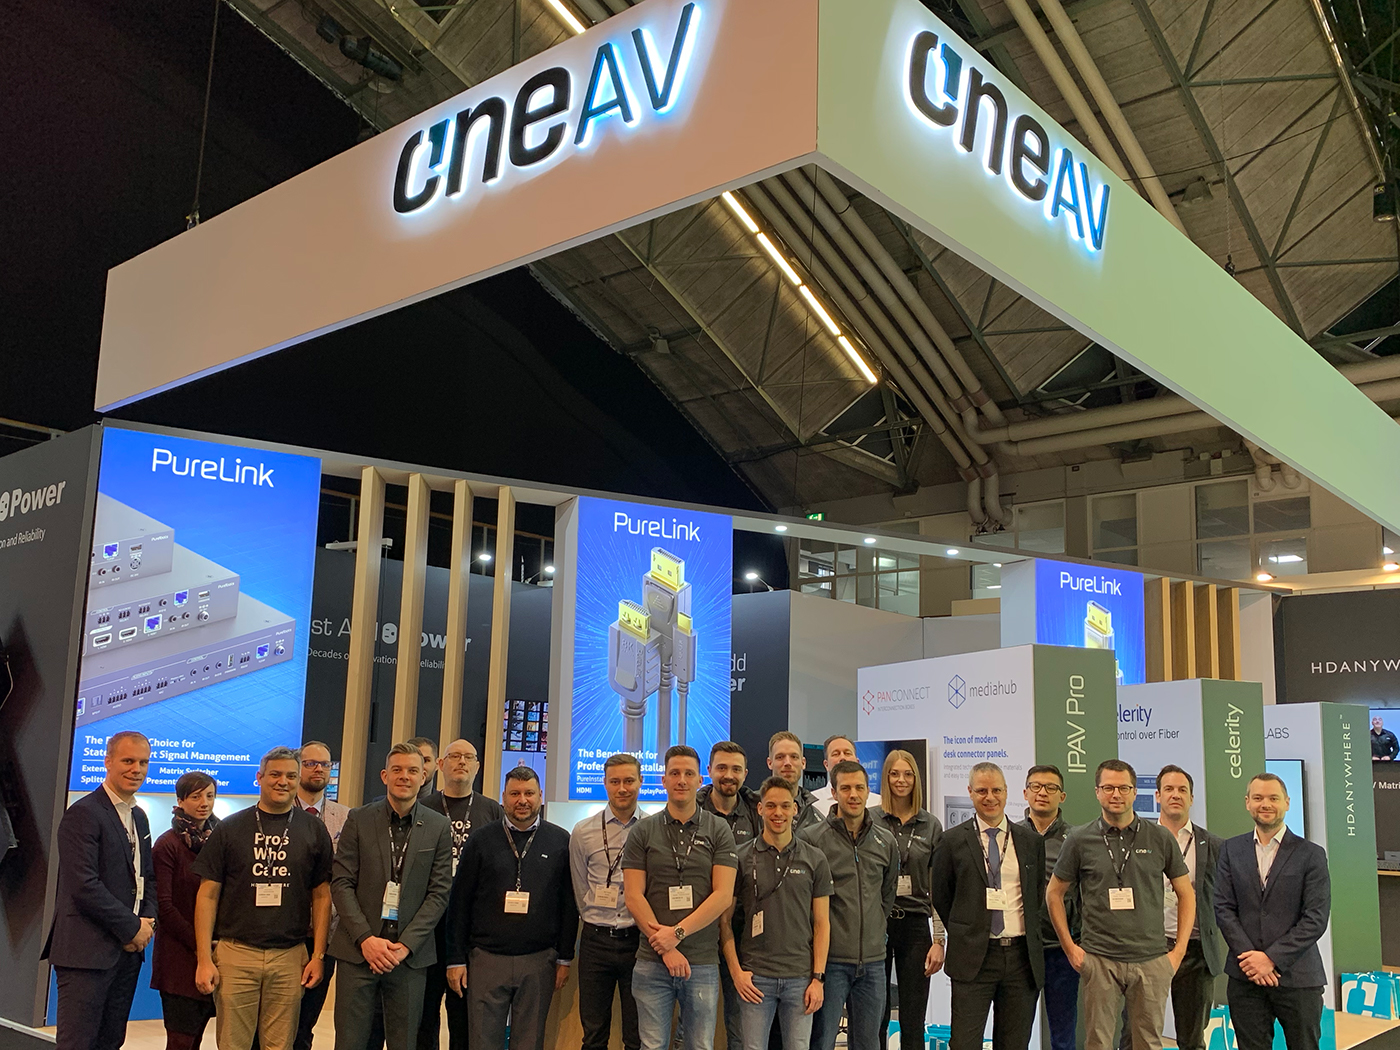 OneAV Stand Hall 1 at ISE in 2020